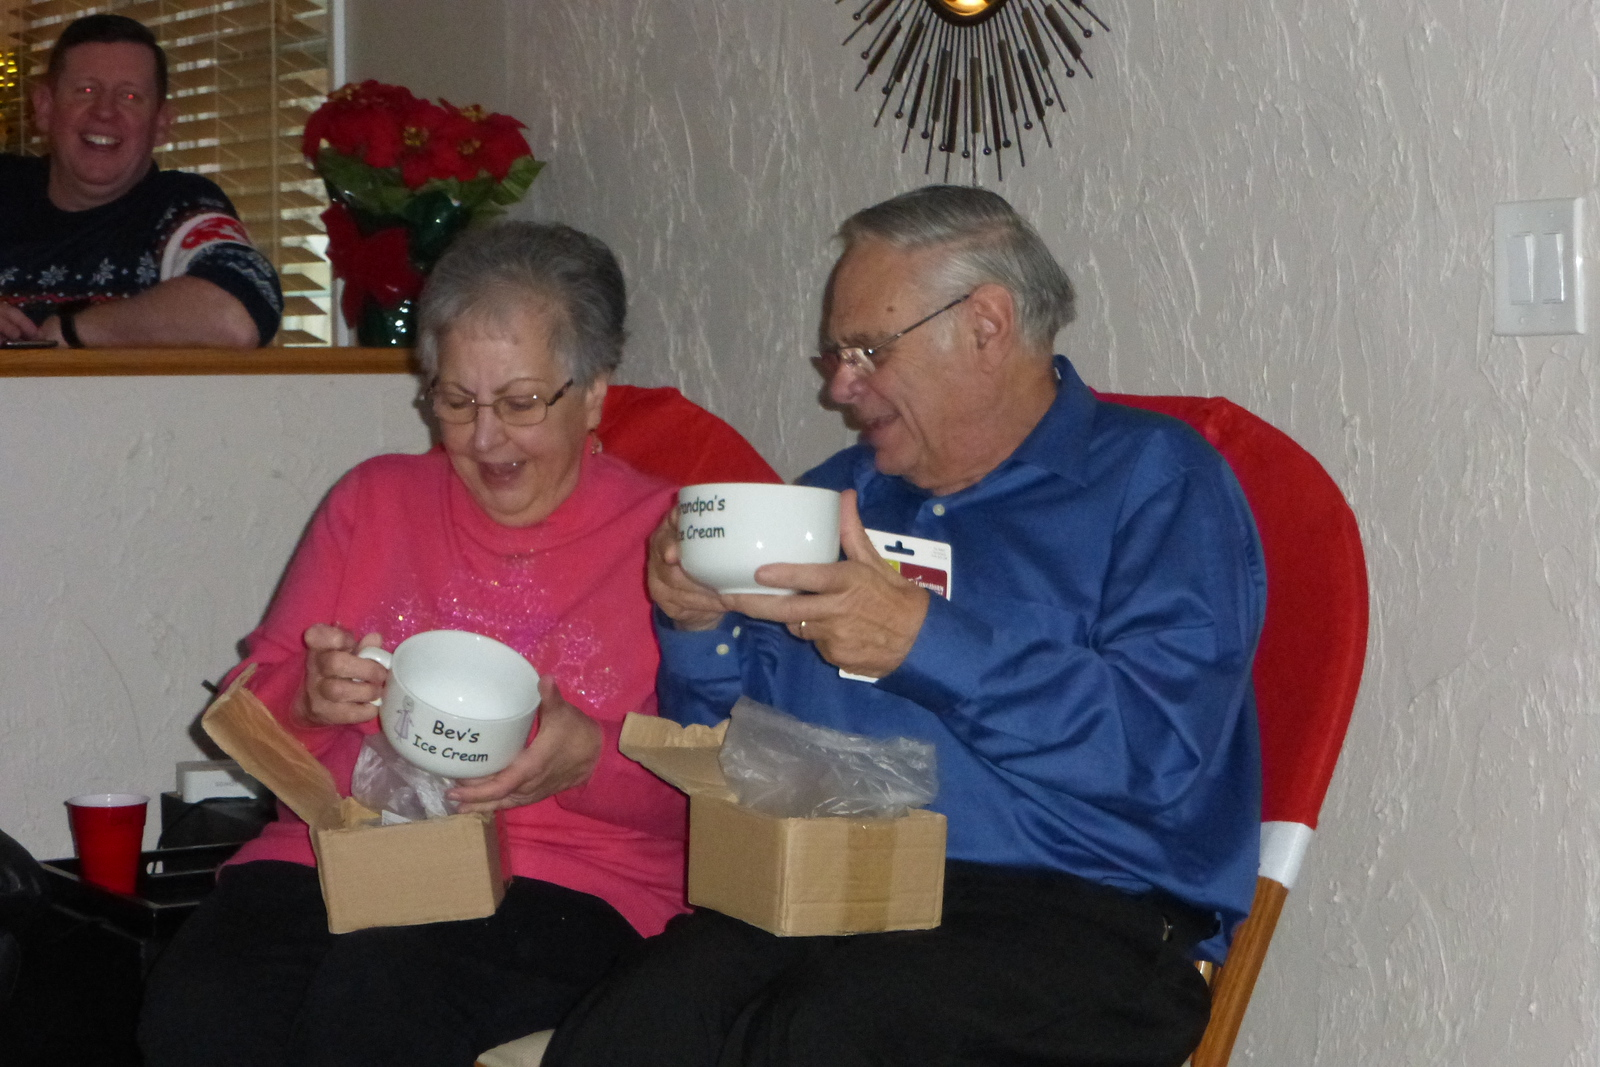 Beverly and Bob opening up their ice cream bowls.